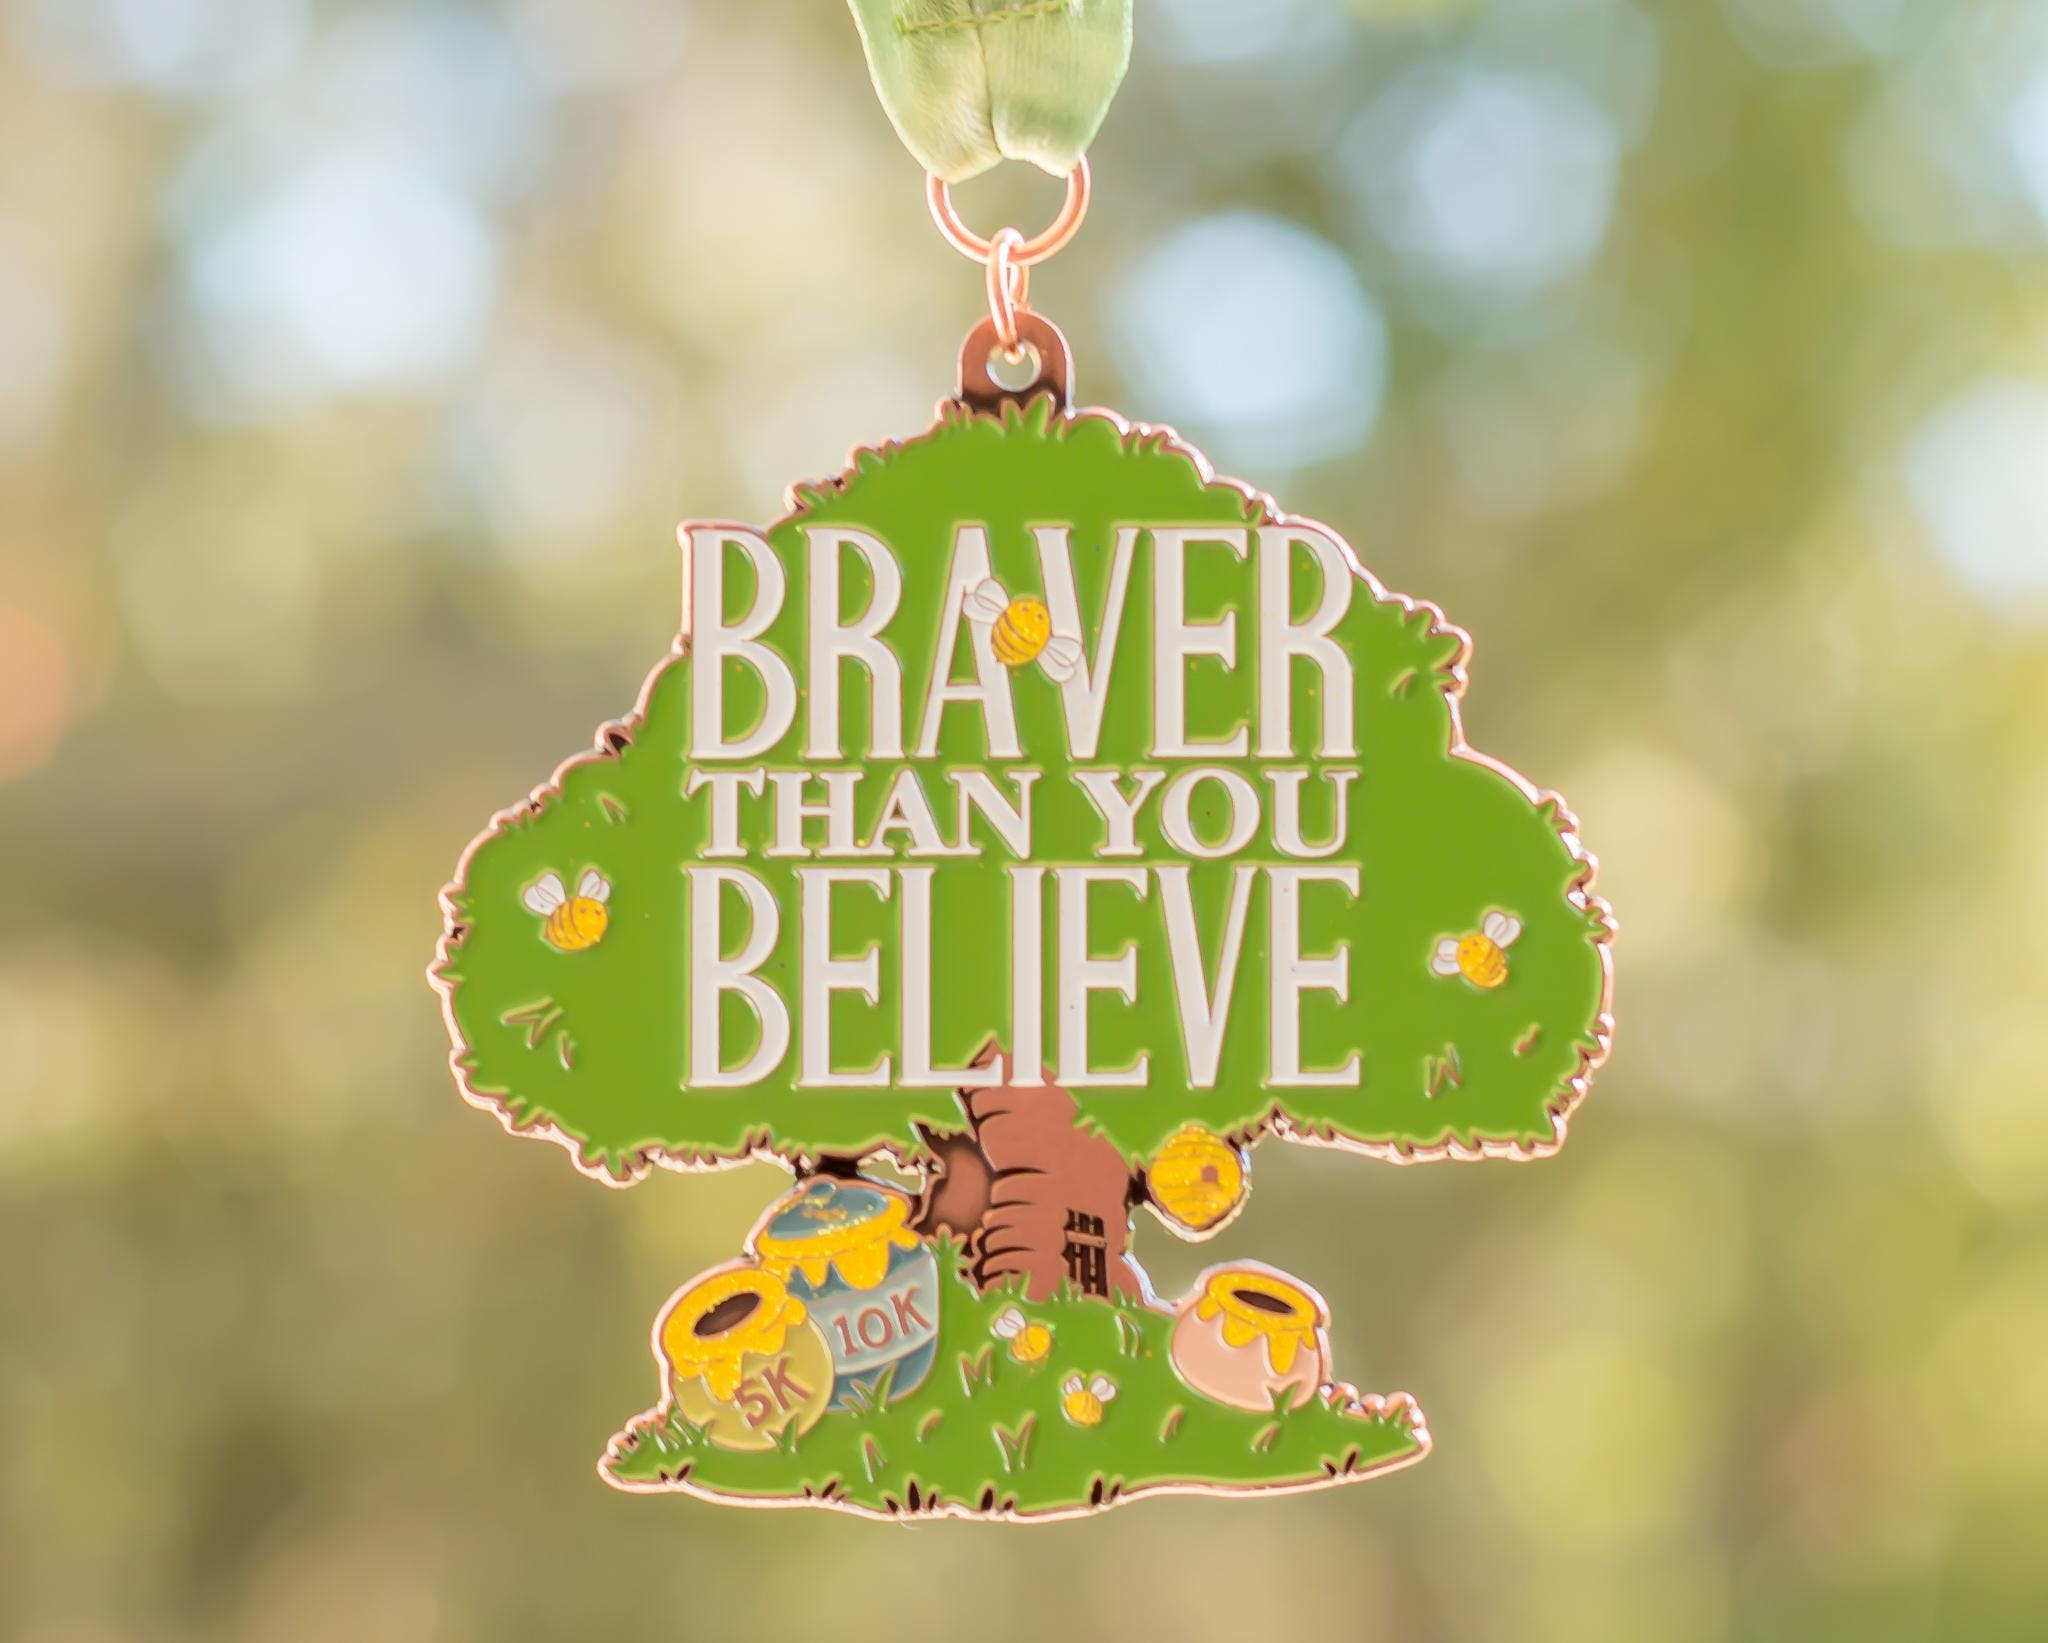 2019 Braver Than You Believe 5K & 10K in honor of National Winnie the Pooh Day - Chandler